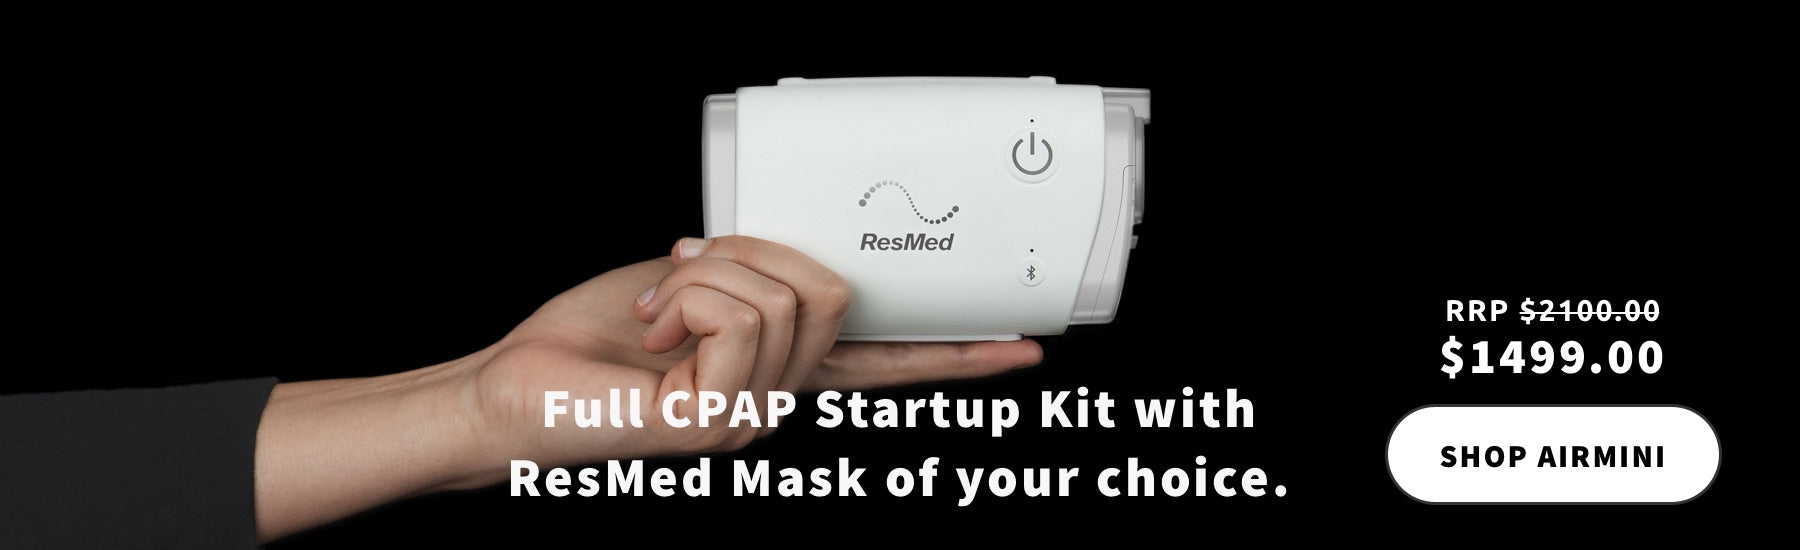 CPAP MACHINES AUSTRALIA RESMED - ResMed products for sale | eBay